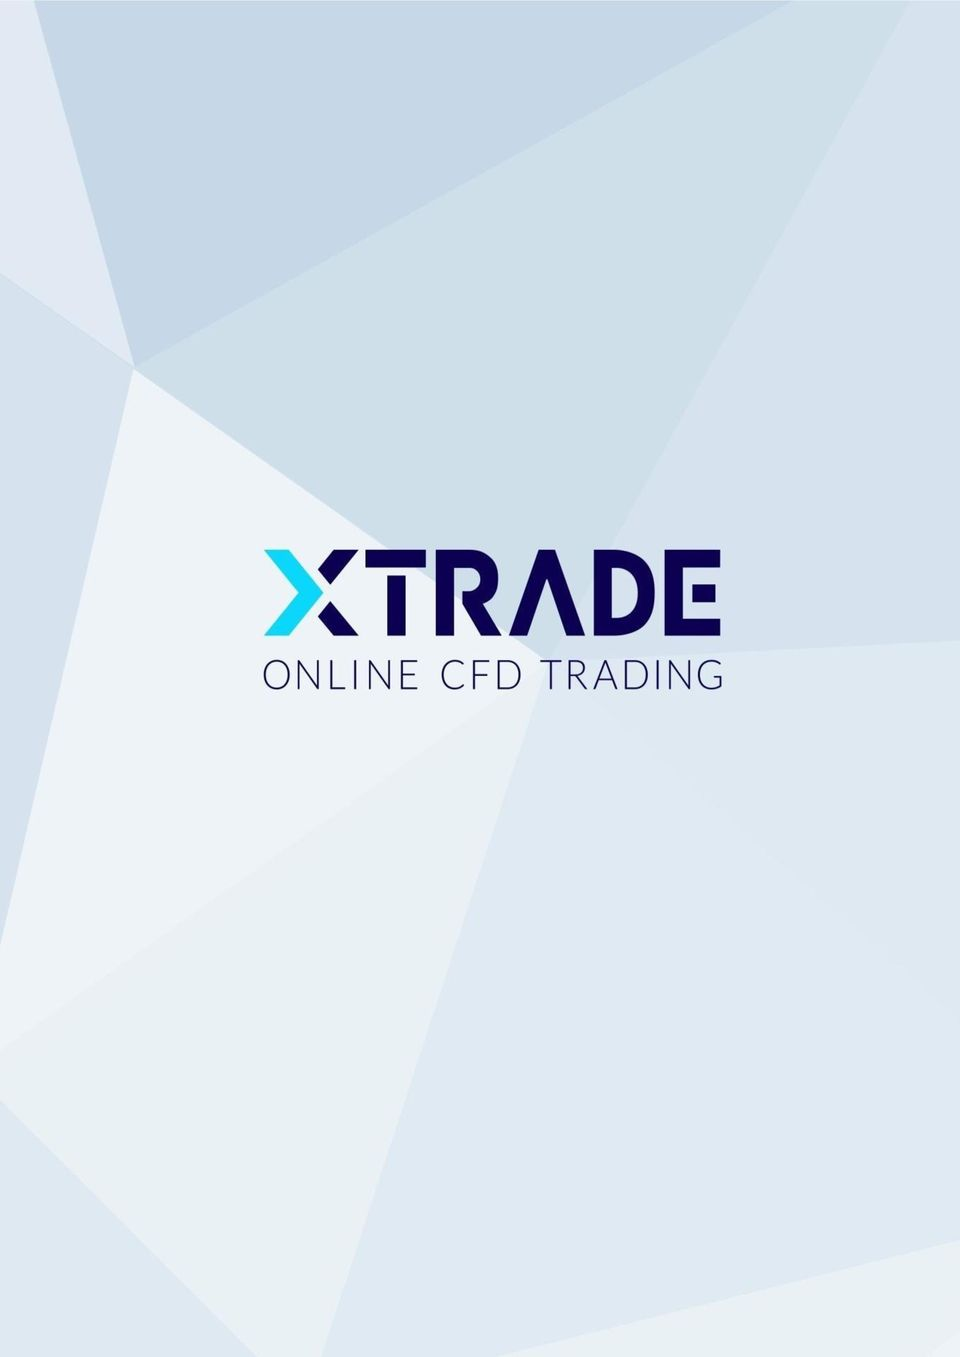 TRADING